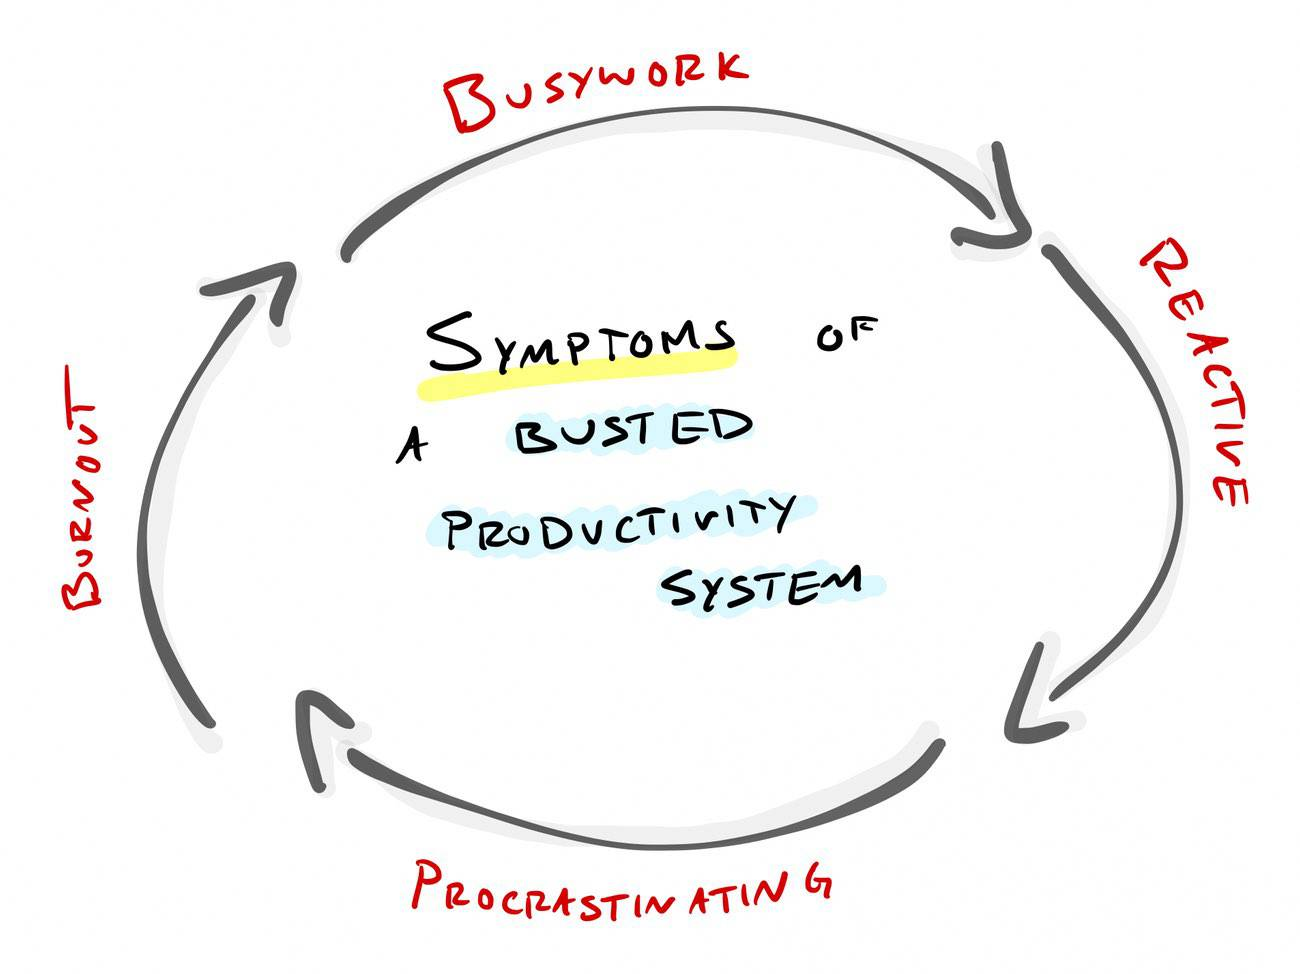 Symptoms of Busted Productivity